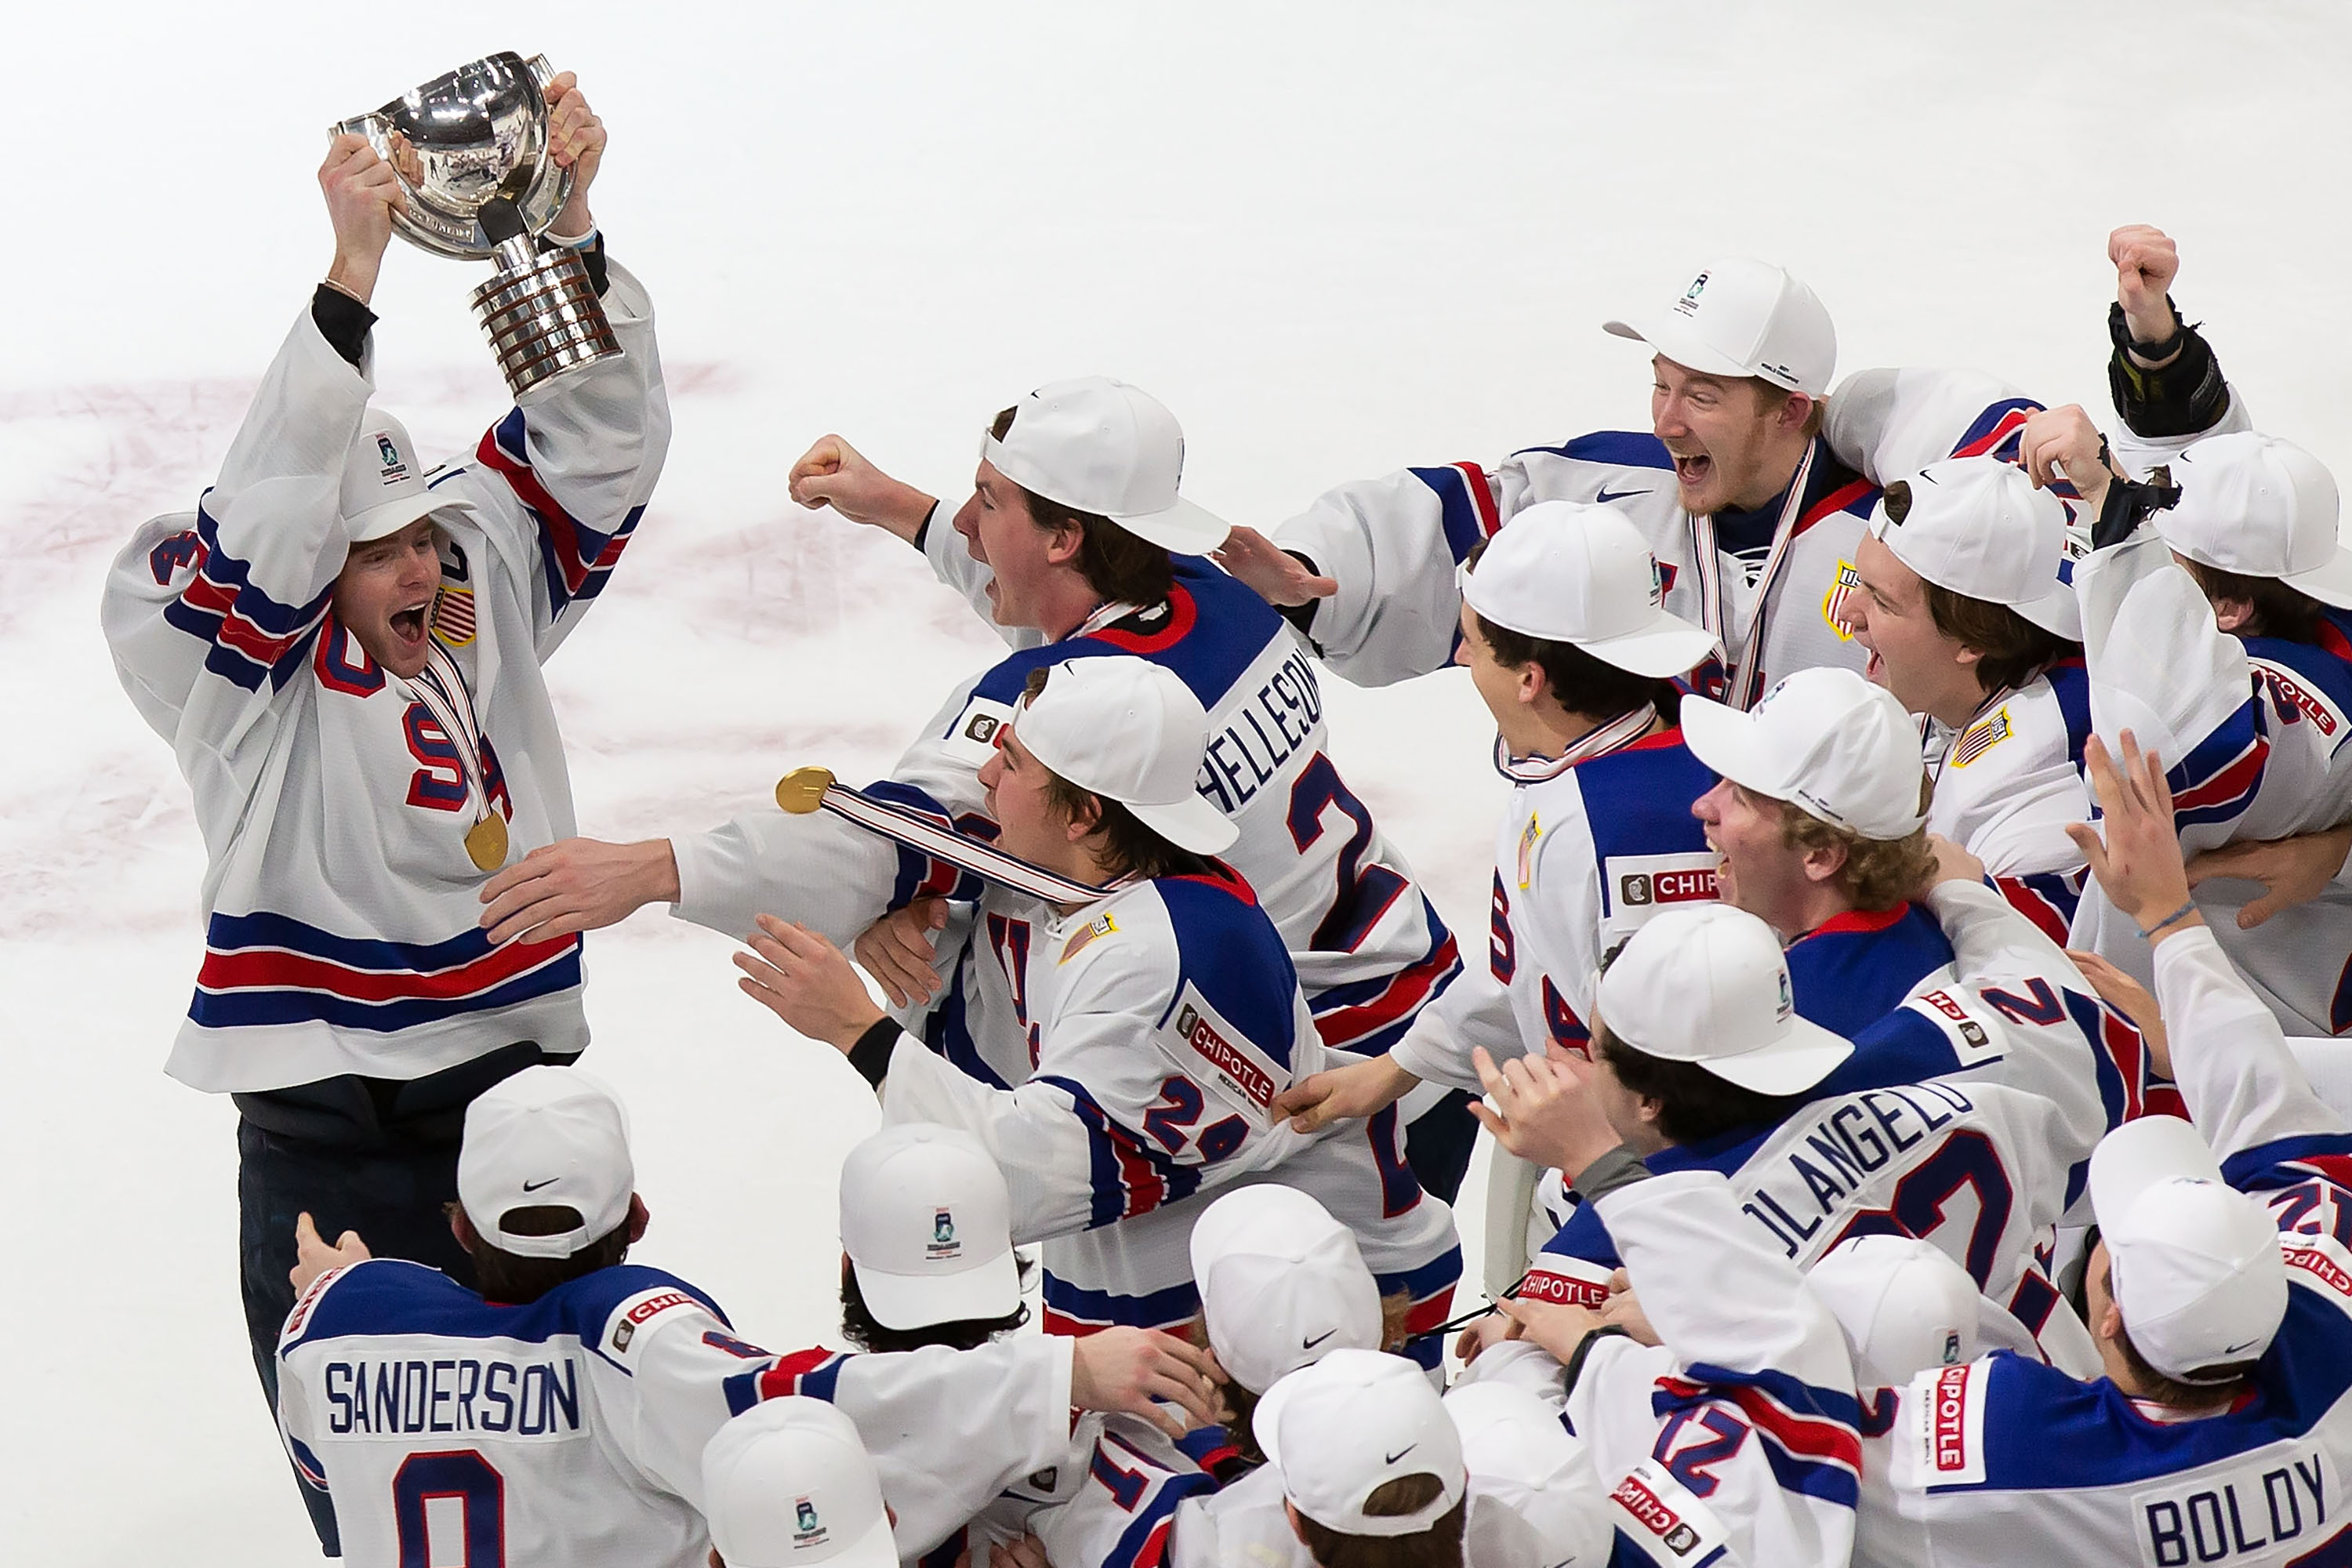 Cam York #4 of the United States hoists the World Junior Championship trophy after beating Canada during the 2021 IIHF World Junior Championship gold medal game at Rogers Place on January 5, 2021 in Edmonton, Canada.